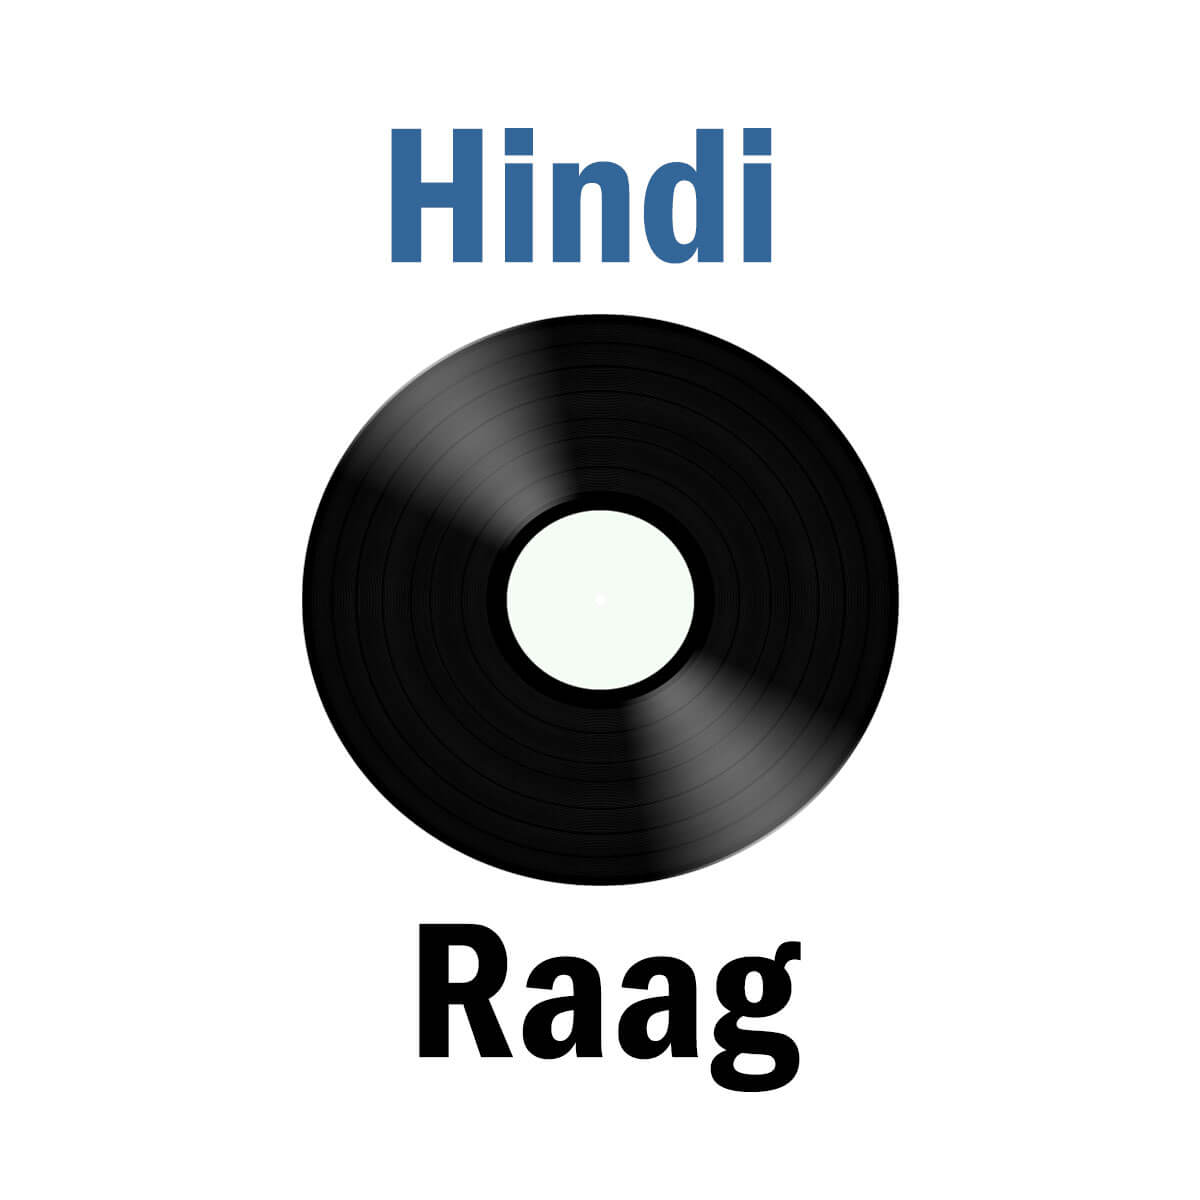 Old Hindi Songs Lyrics List Of Top Songs You Must Checkout 20 verses from these beautiful hindi songs will live forever in our playlists, thoughts, and now in instagram captions. old hindi songs lyrics list of top